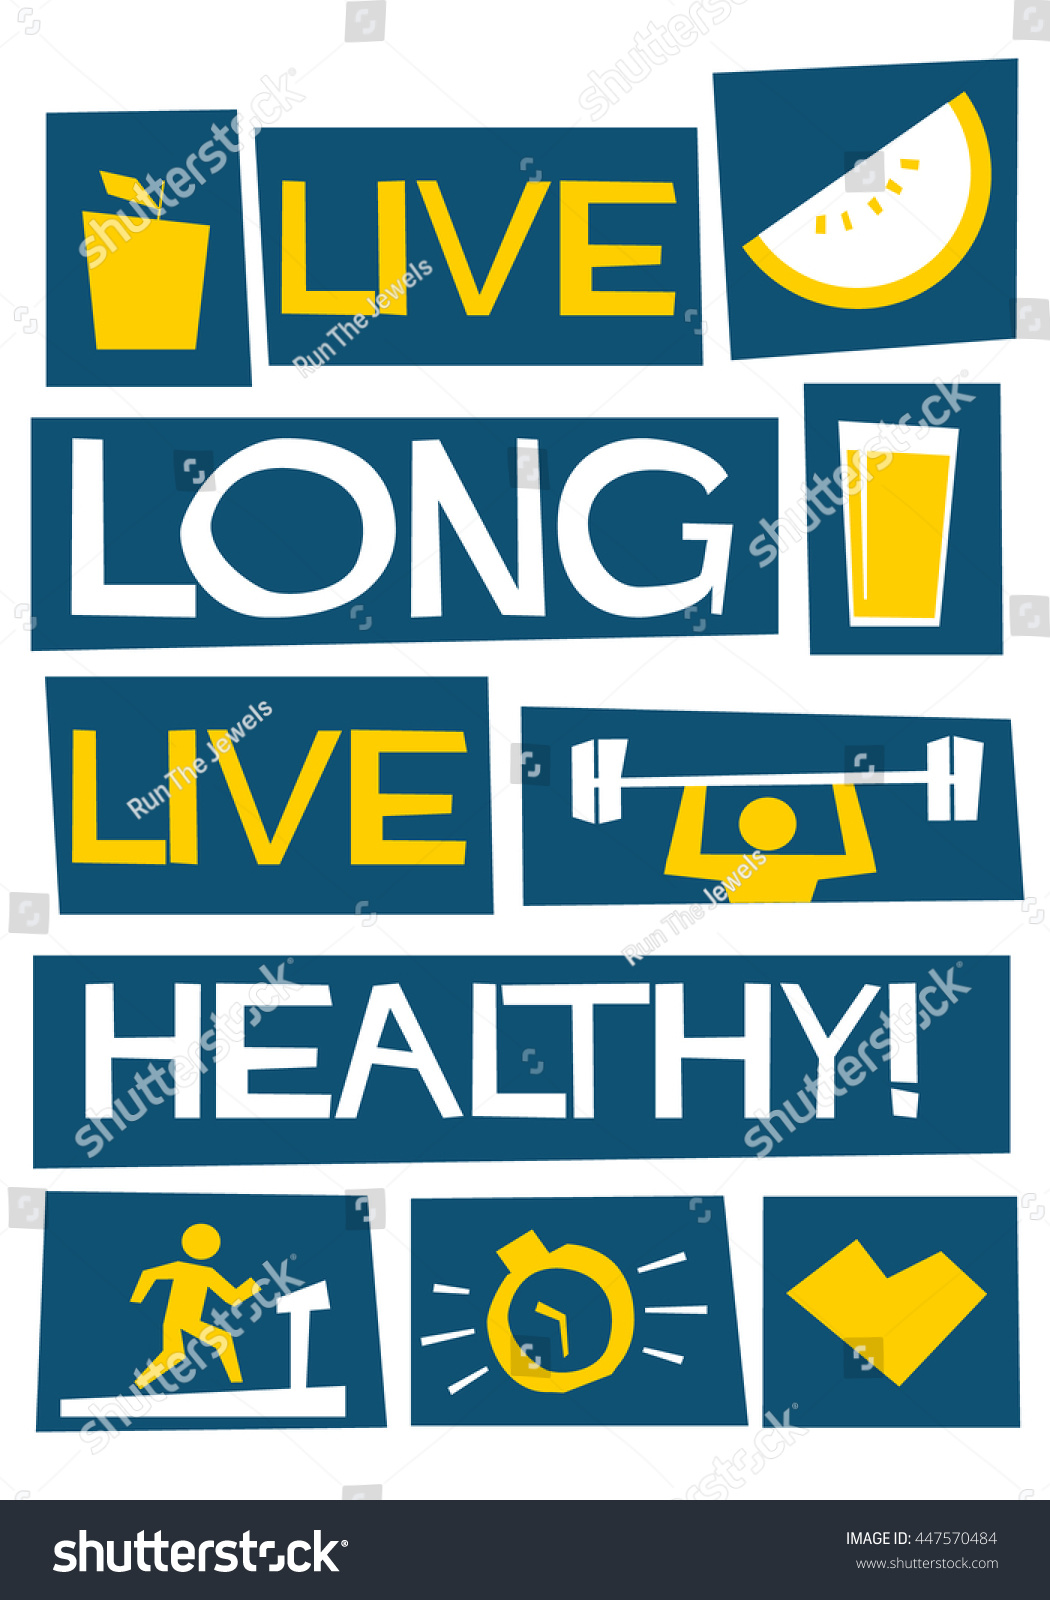 Live Long Live Healthy! (Motivational Health Quote Vector Poster Design)